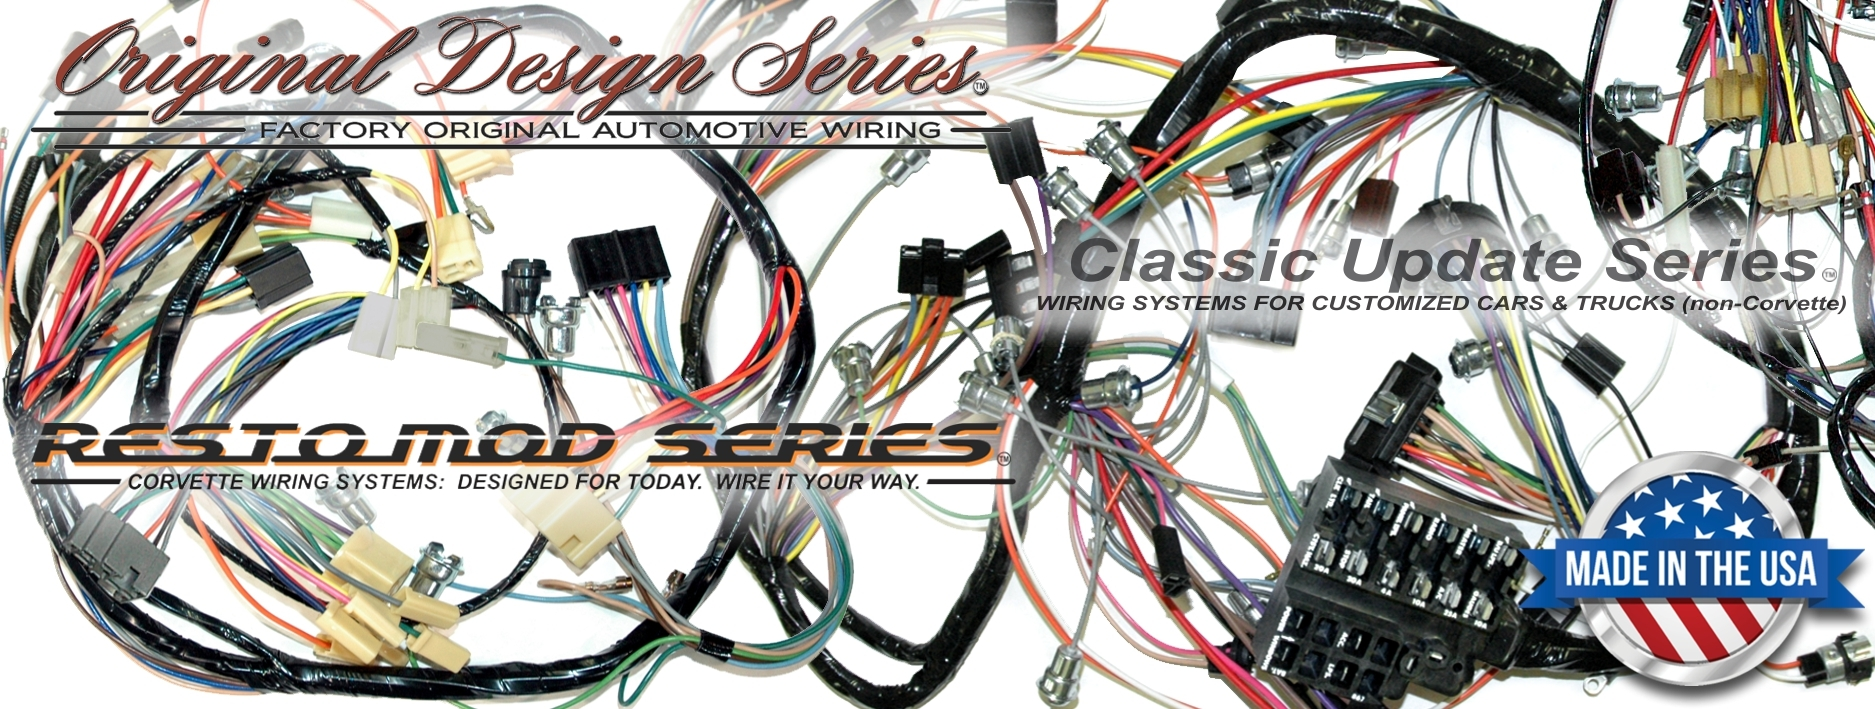 hight resolution of automotive wire harness supplier